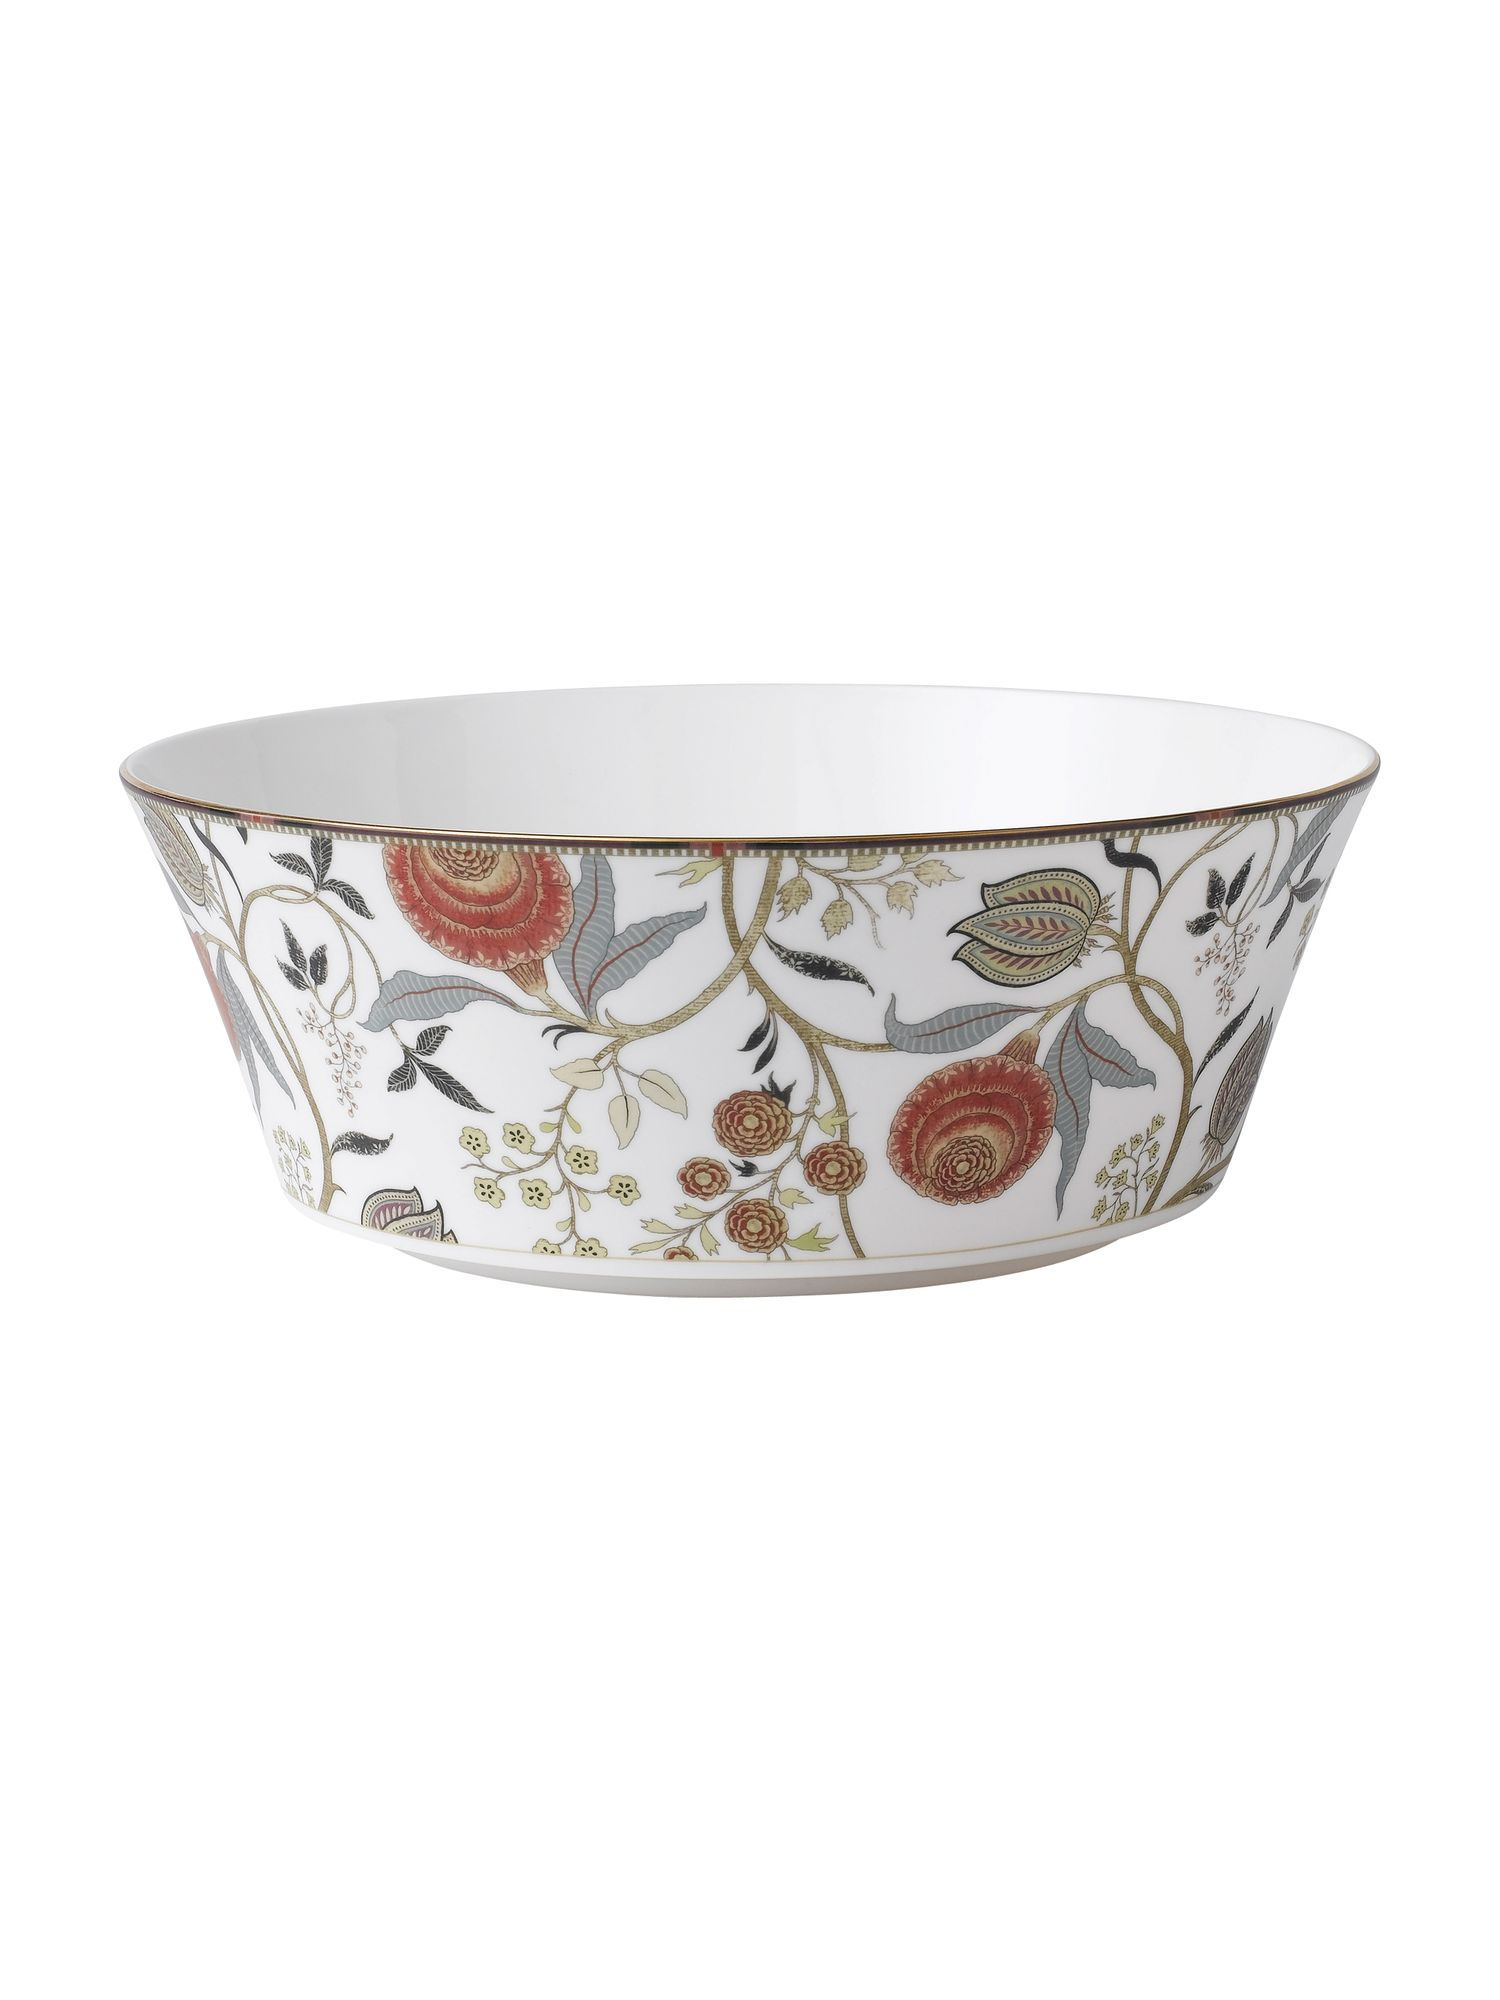 Pashmina rnd serving bowl 10.0 iconic